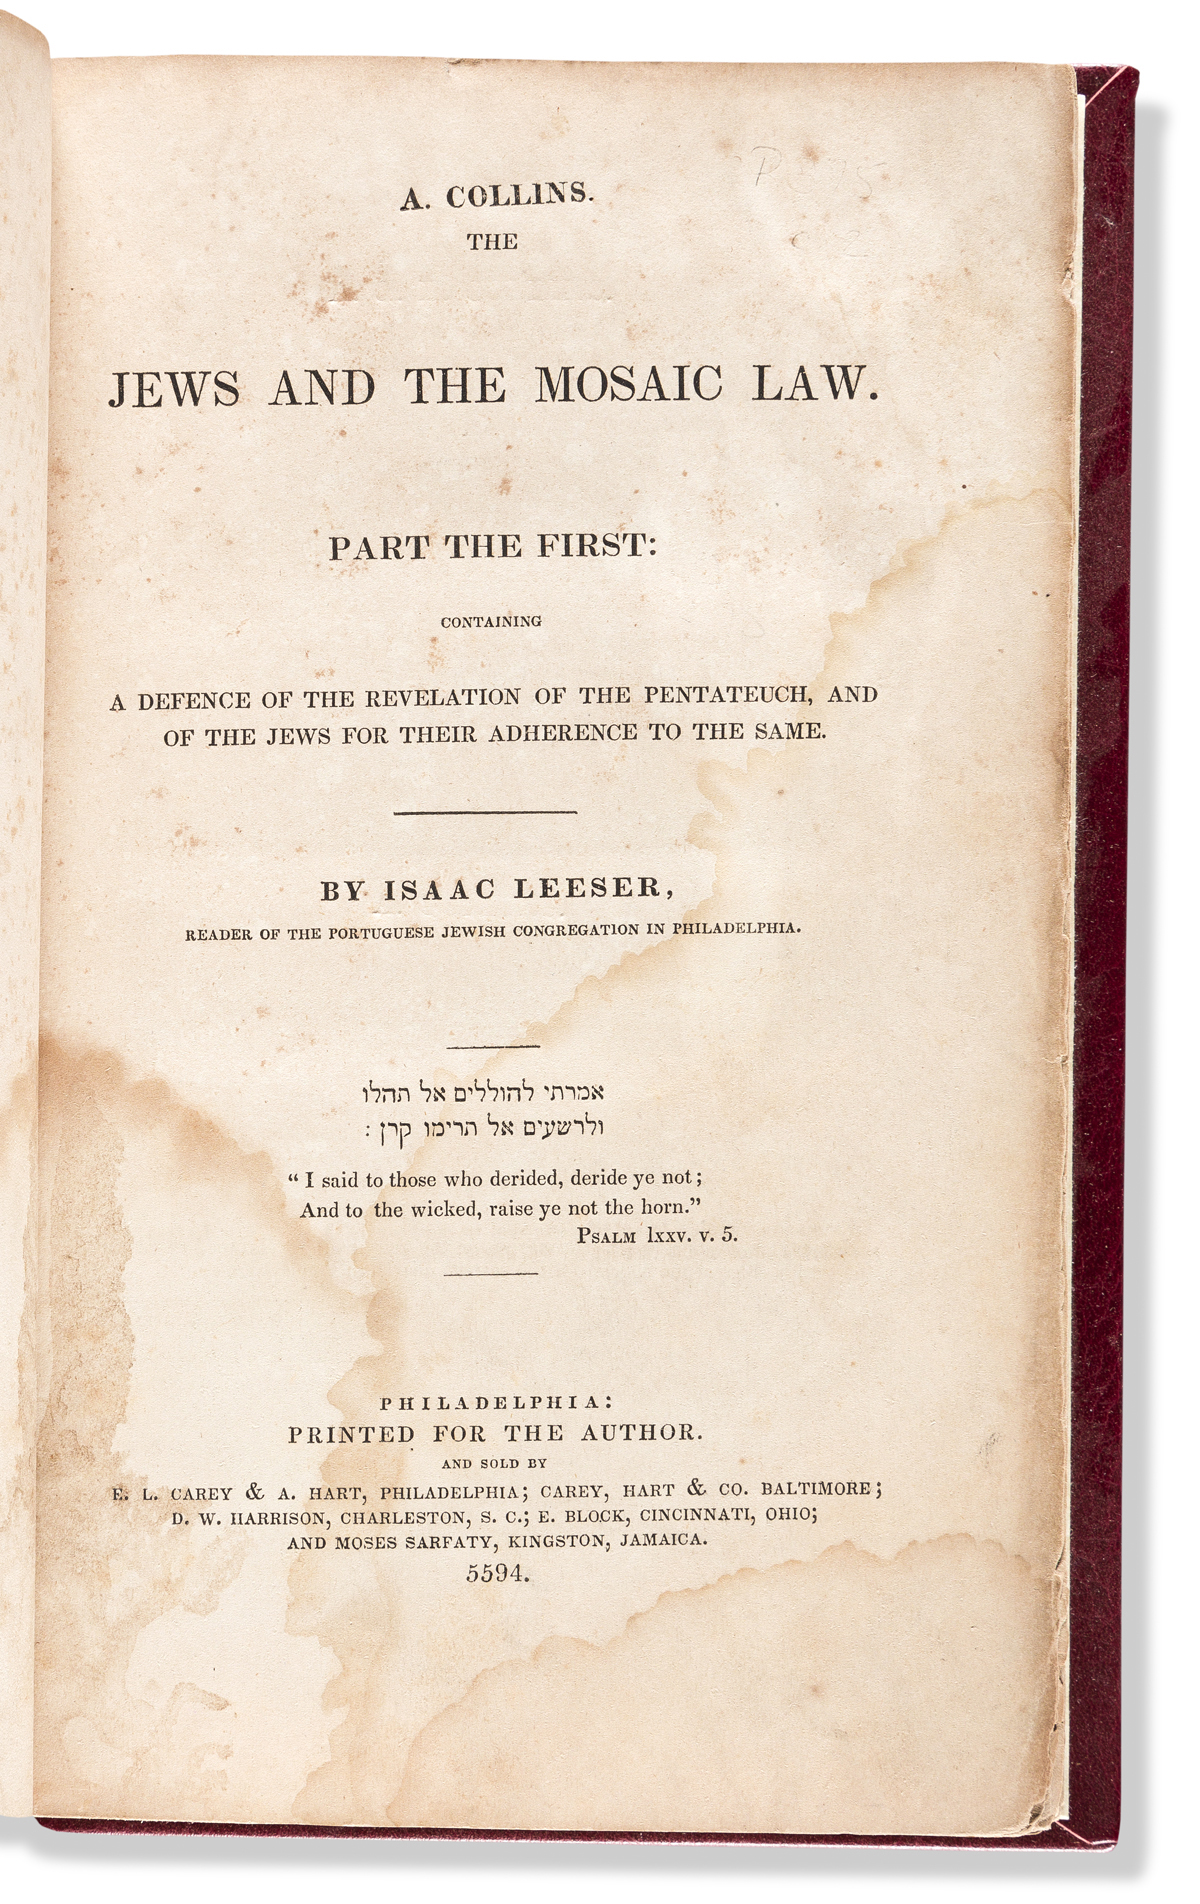 (JUDAICA.) Isaac Leeser. The Jews and the Mosaic Law.